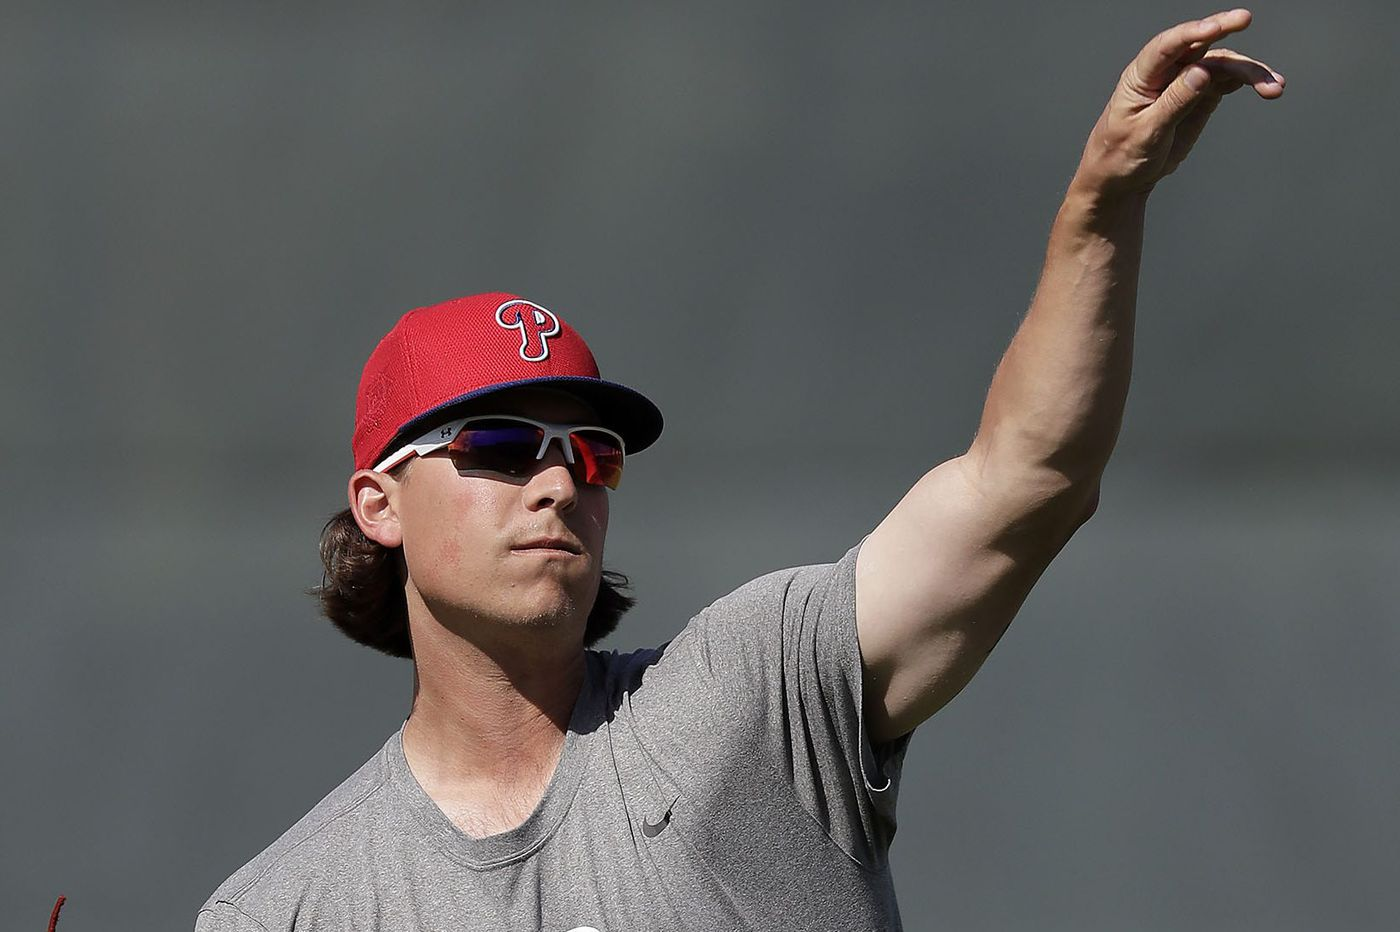 South Jersey native Jeff Singer working his way toward Phillies